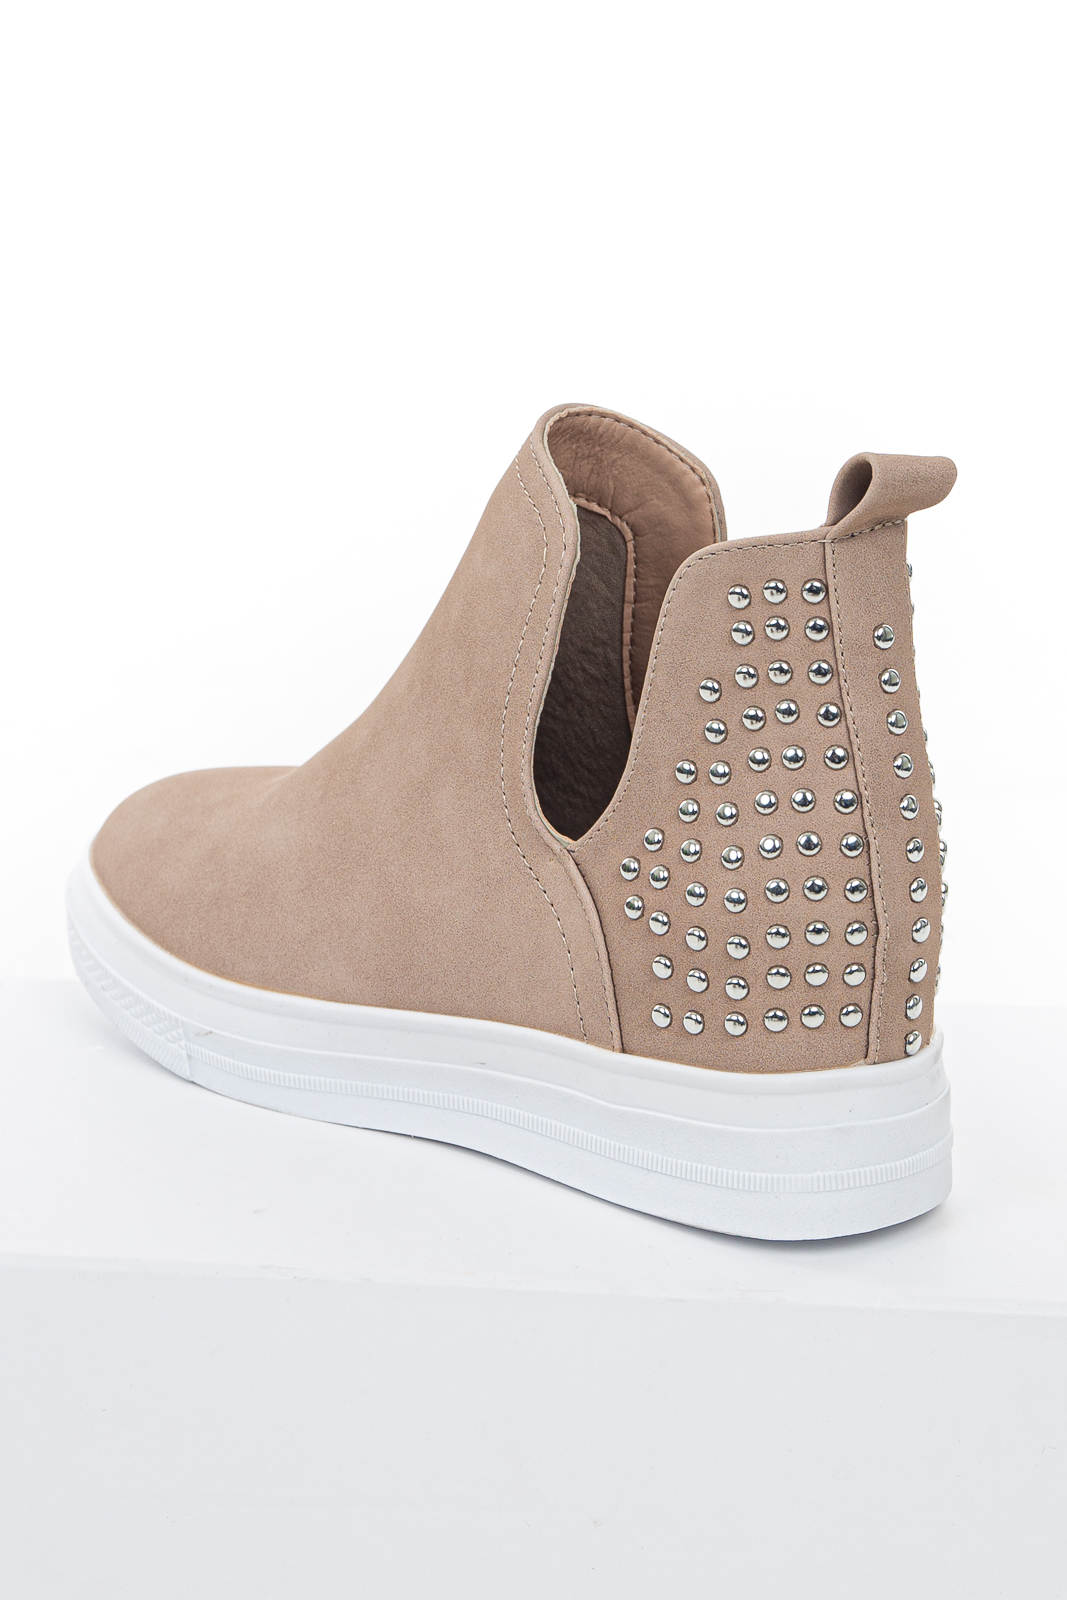 Latte Faux Leather Wedge Sneakers with Silver Studded Heel